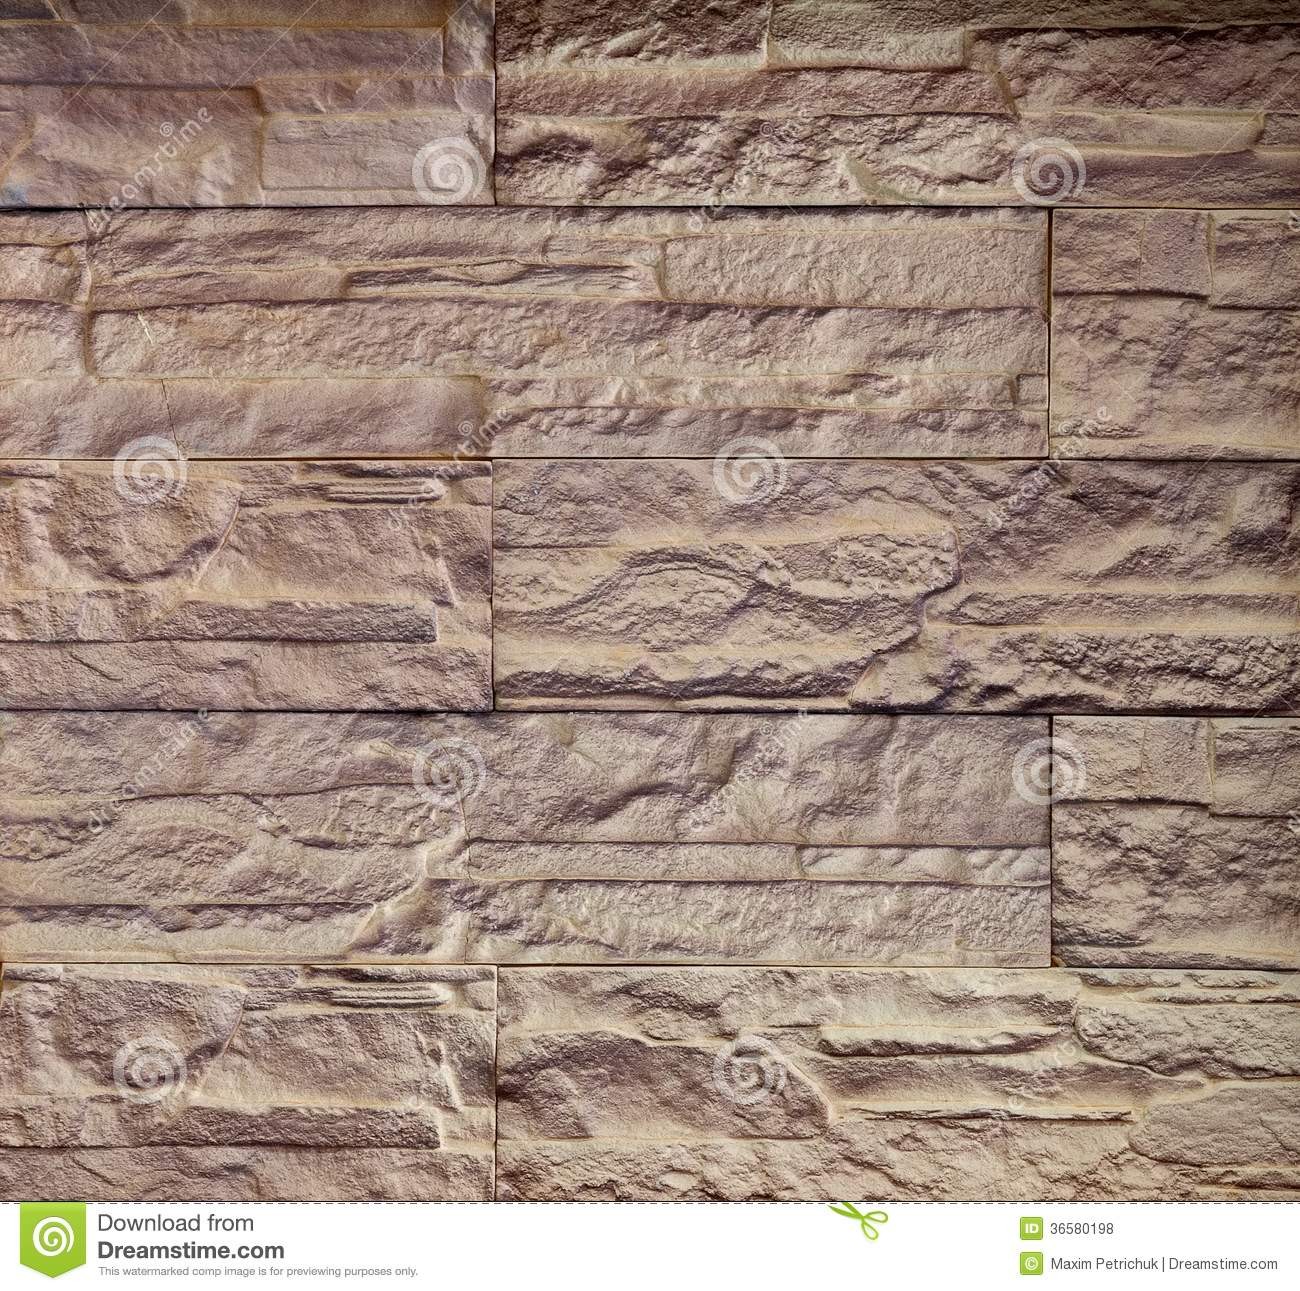 Stone wall surface royalty free stock photos image 36580198 for Wall surface texture